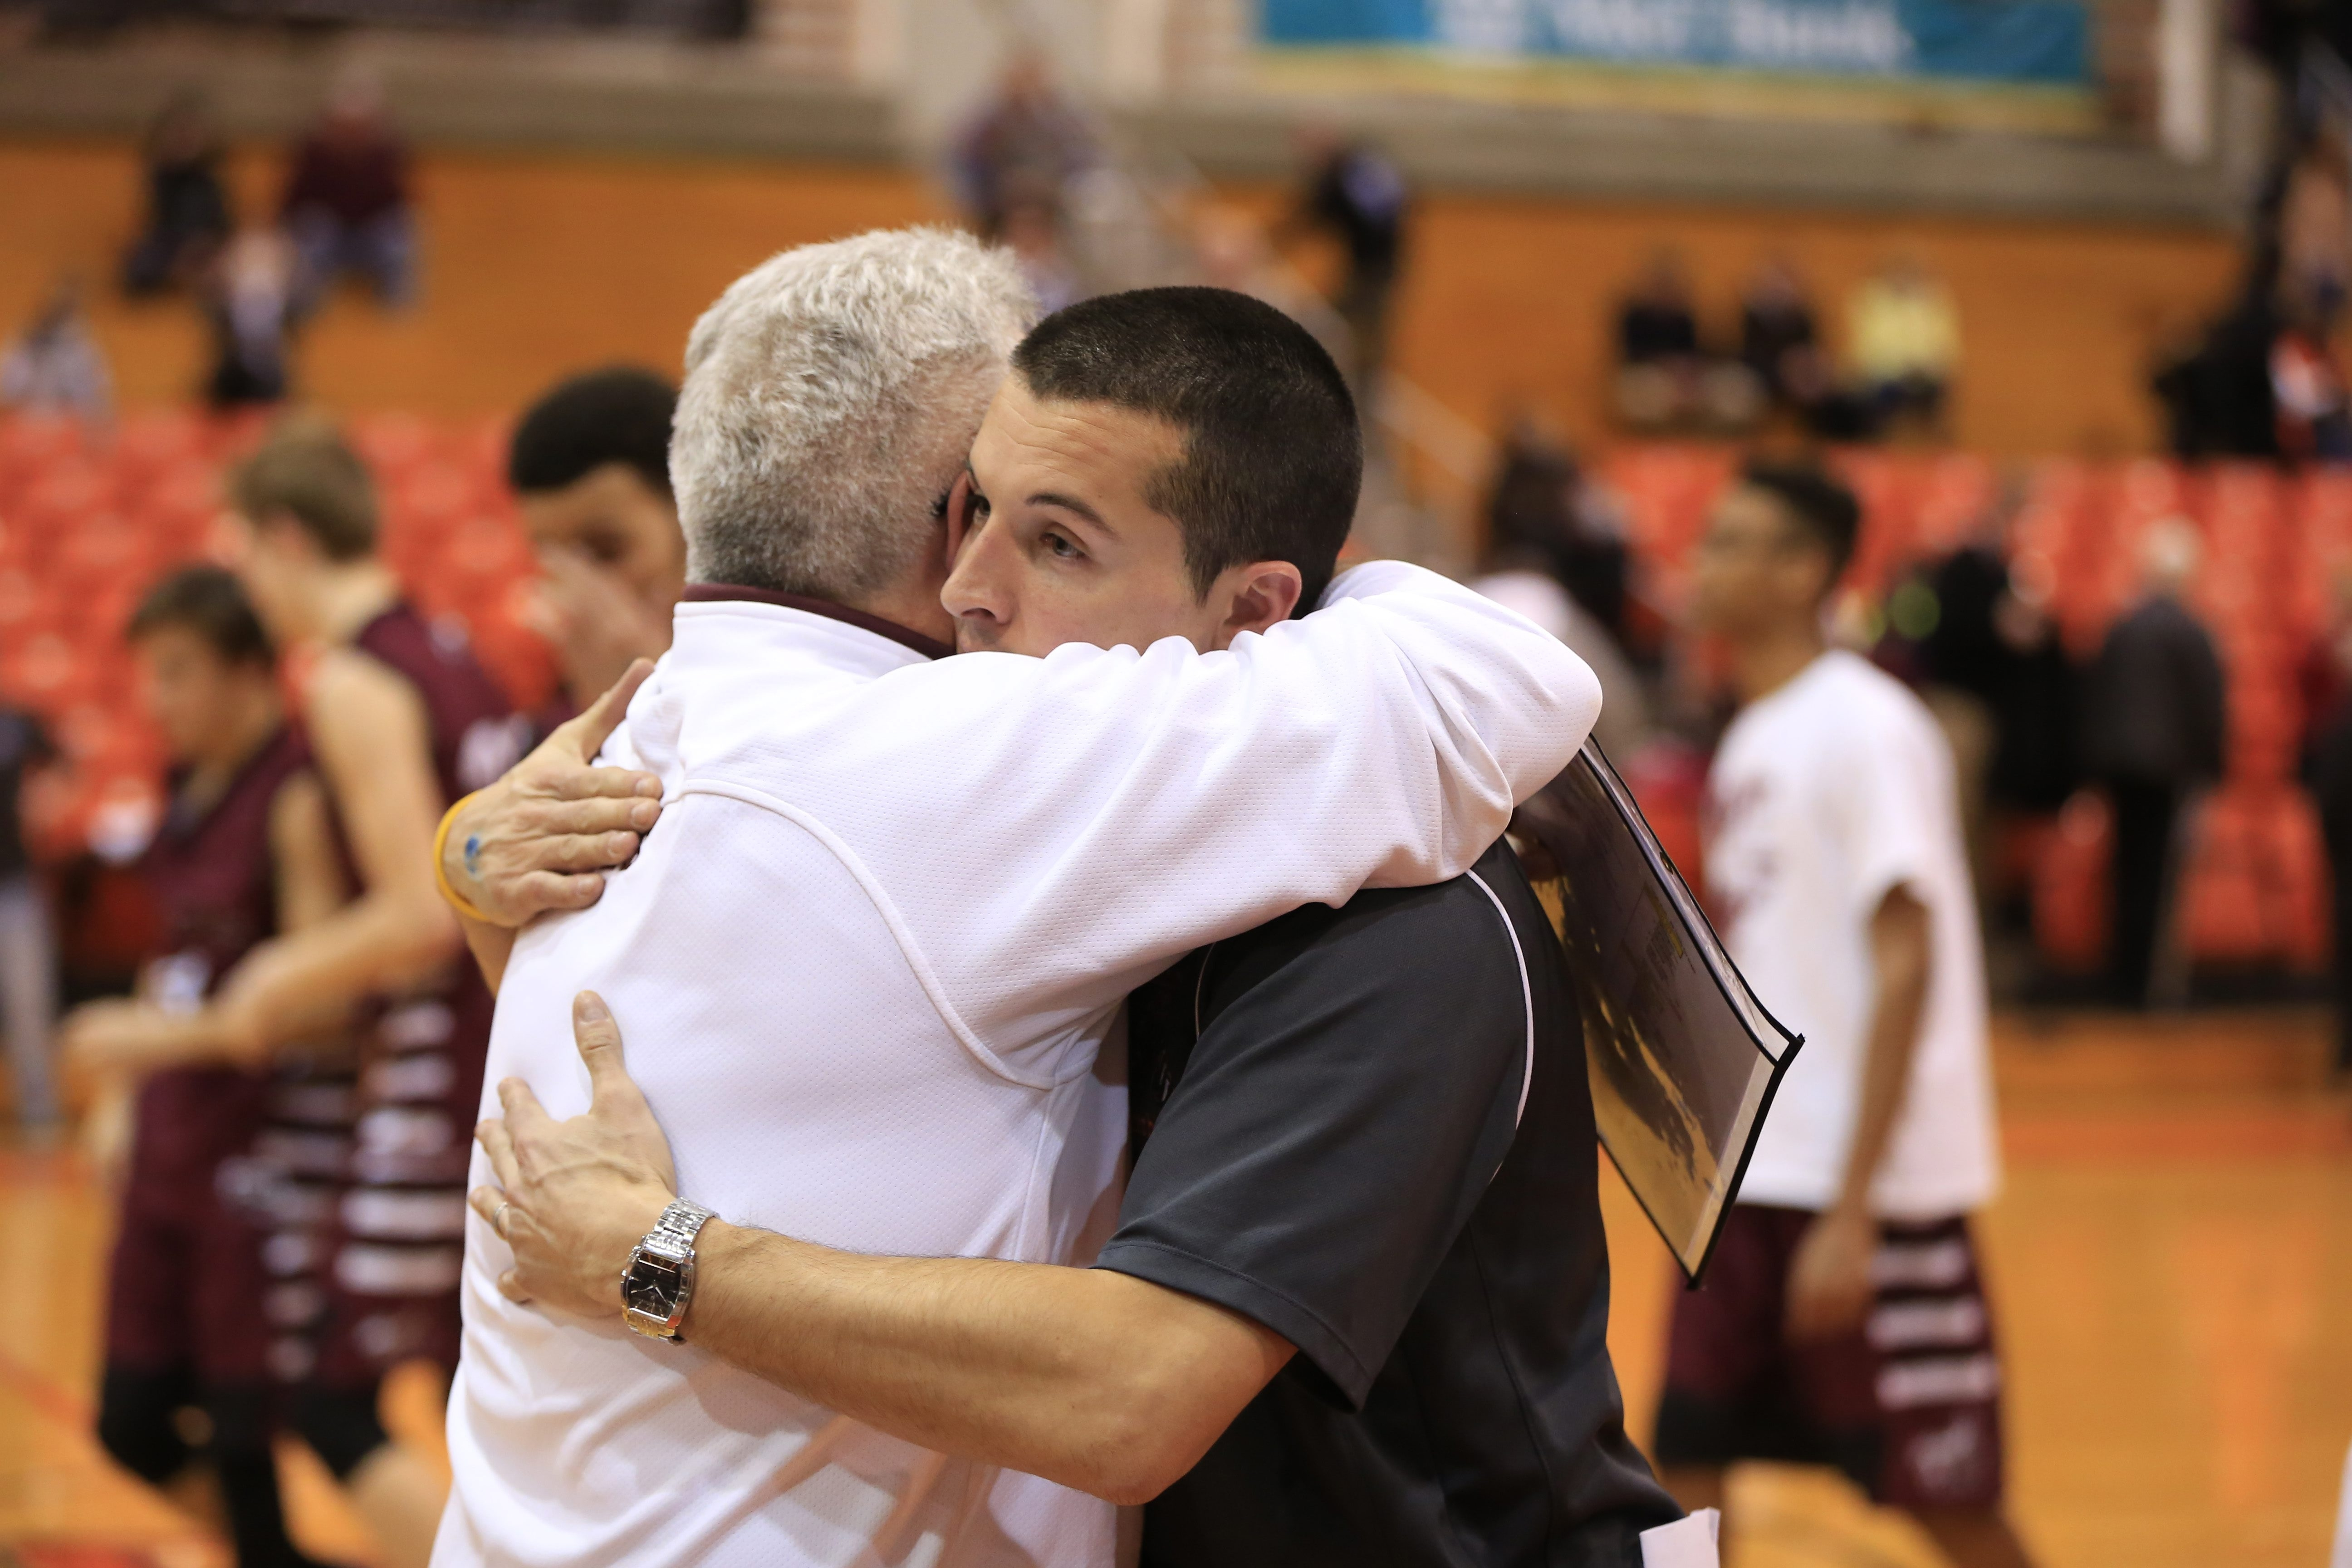 Marvale coach Mark Kensey and his son Chris coach of Amherst greet each other after Amherst defeated Maryvale in the A2 Semi-finals at the Buffalo State Sports Arena on Monday, Feb. 22, 2016.  (Harry Scull Jr./Buffalo News)